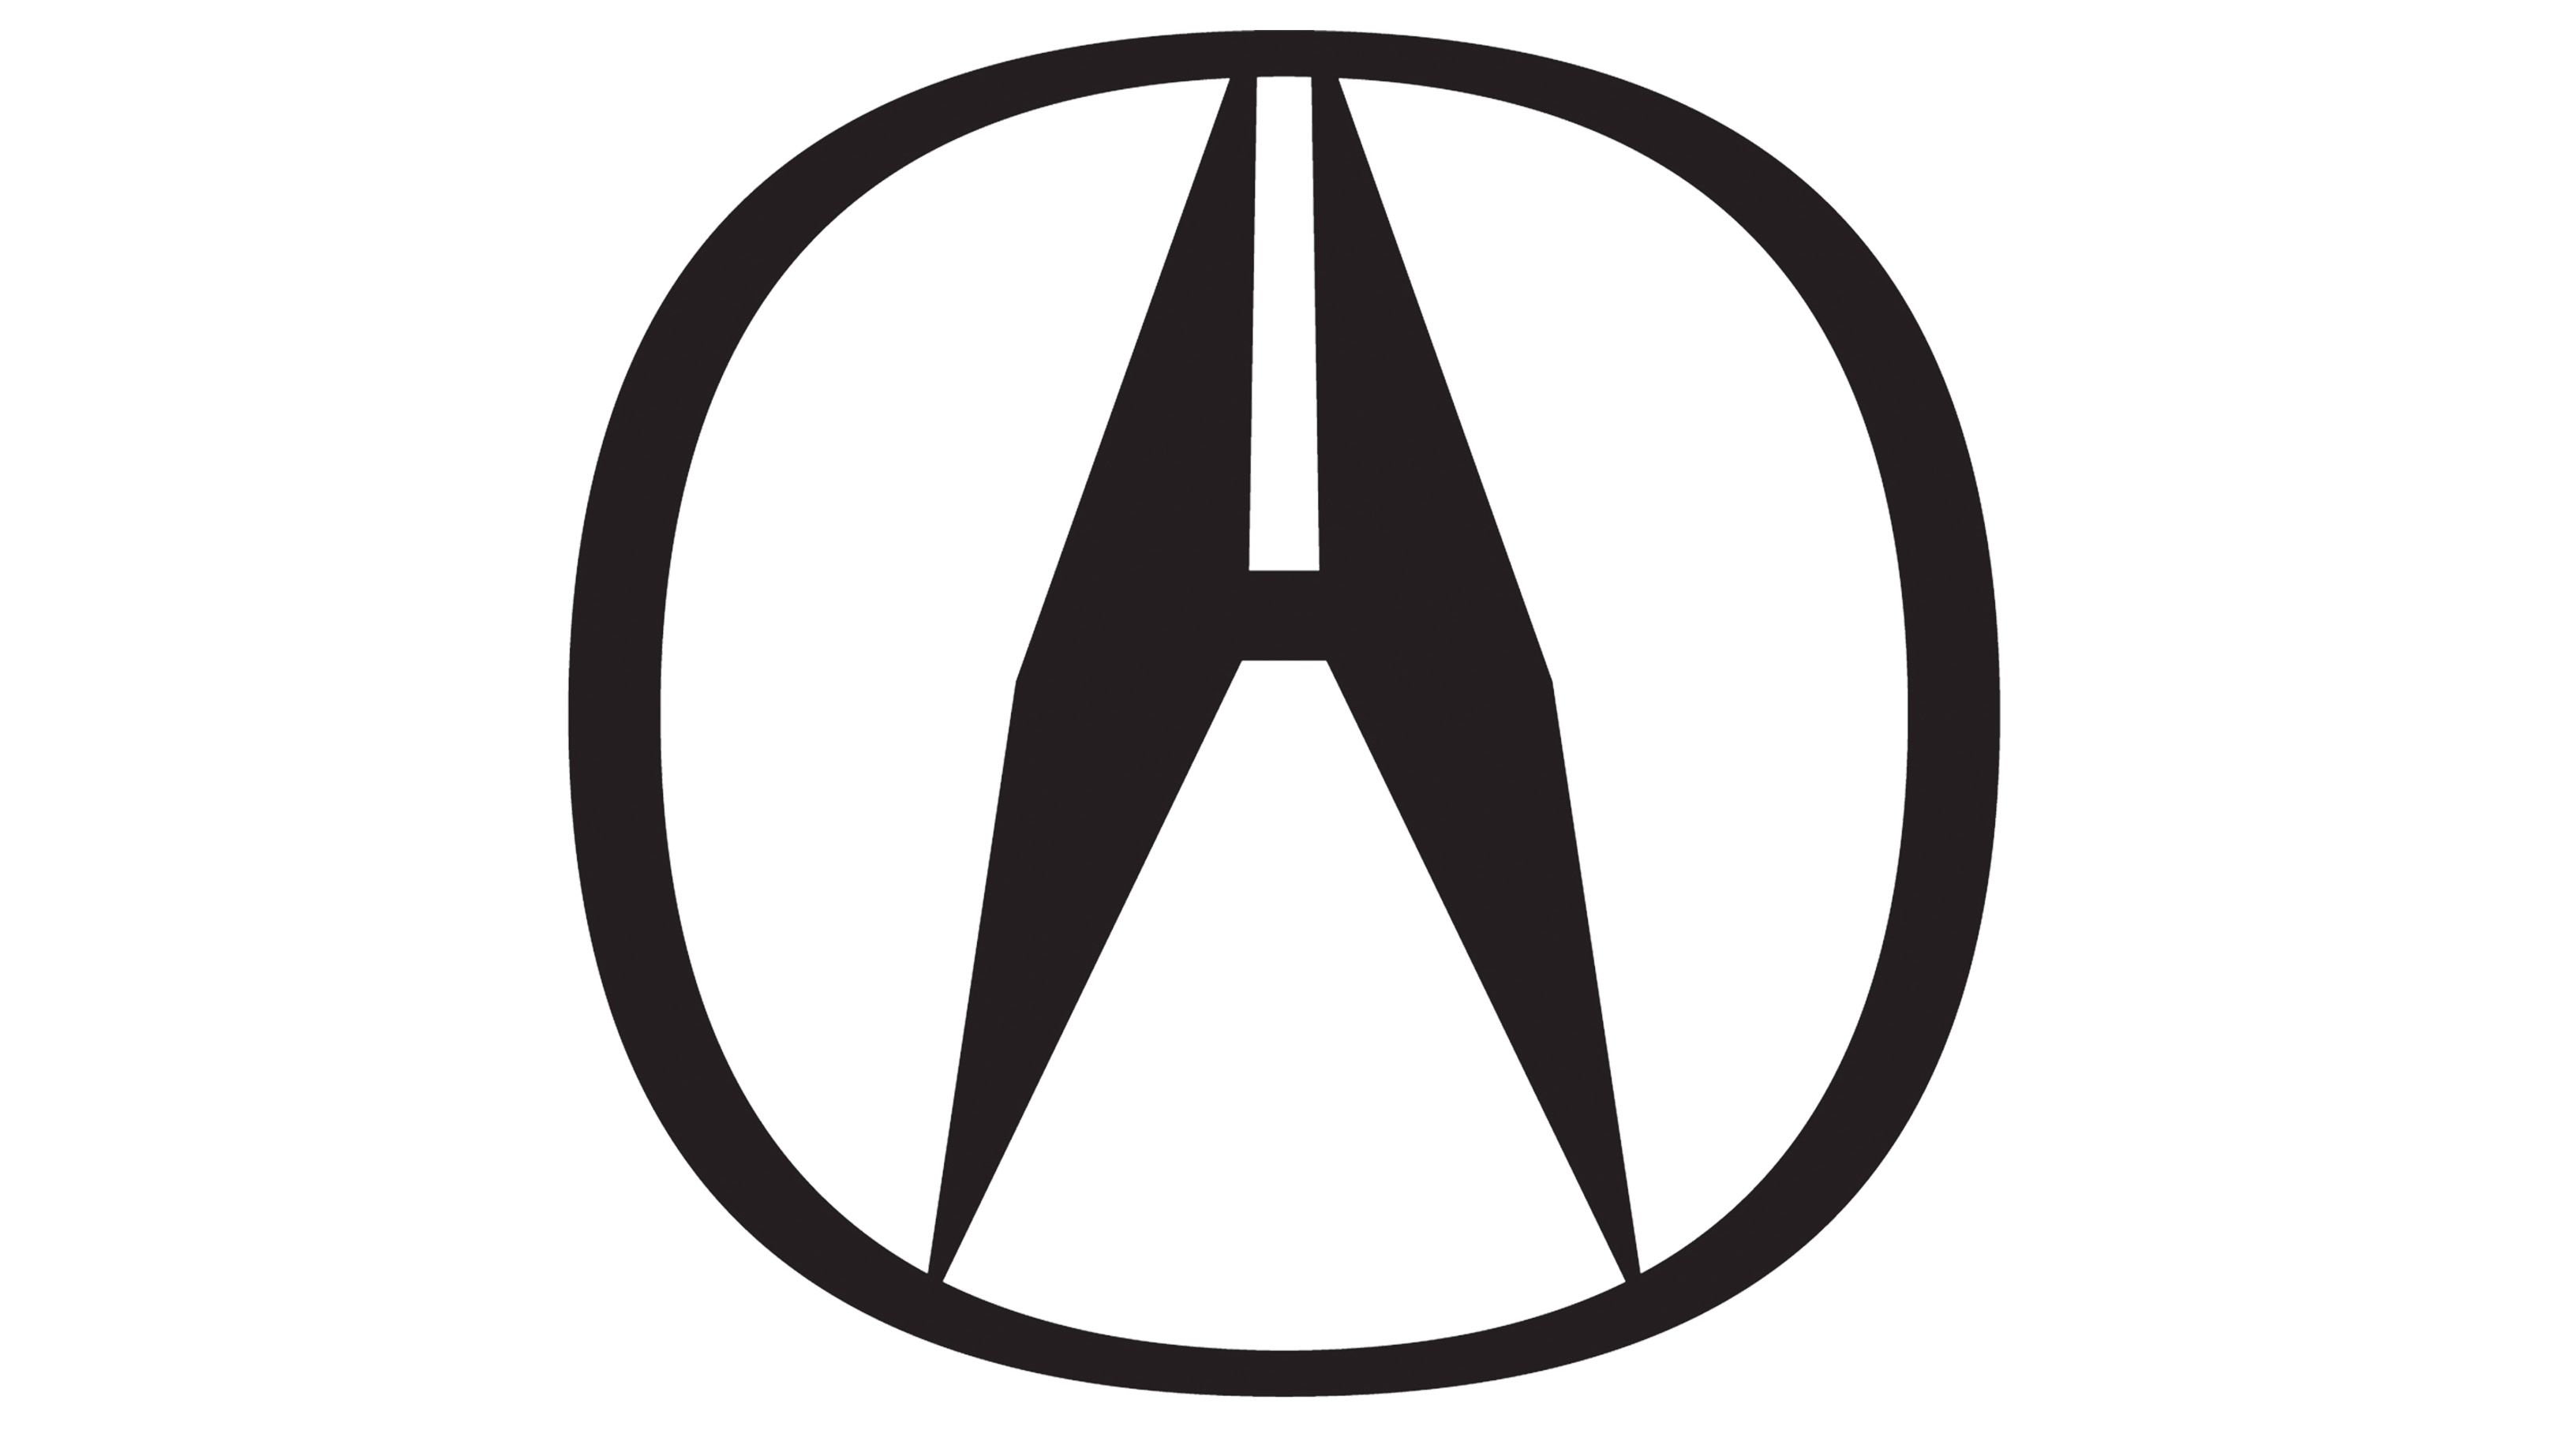 acura logo  symbol  meaning  history and evolution